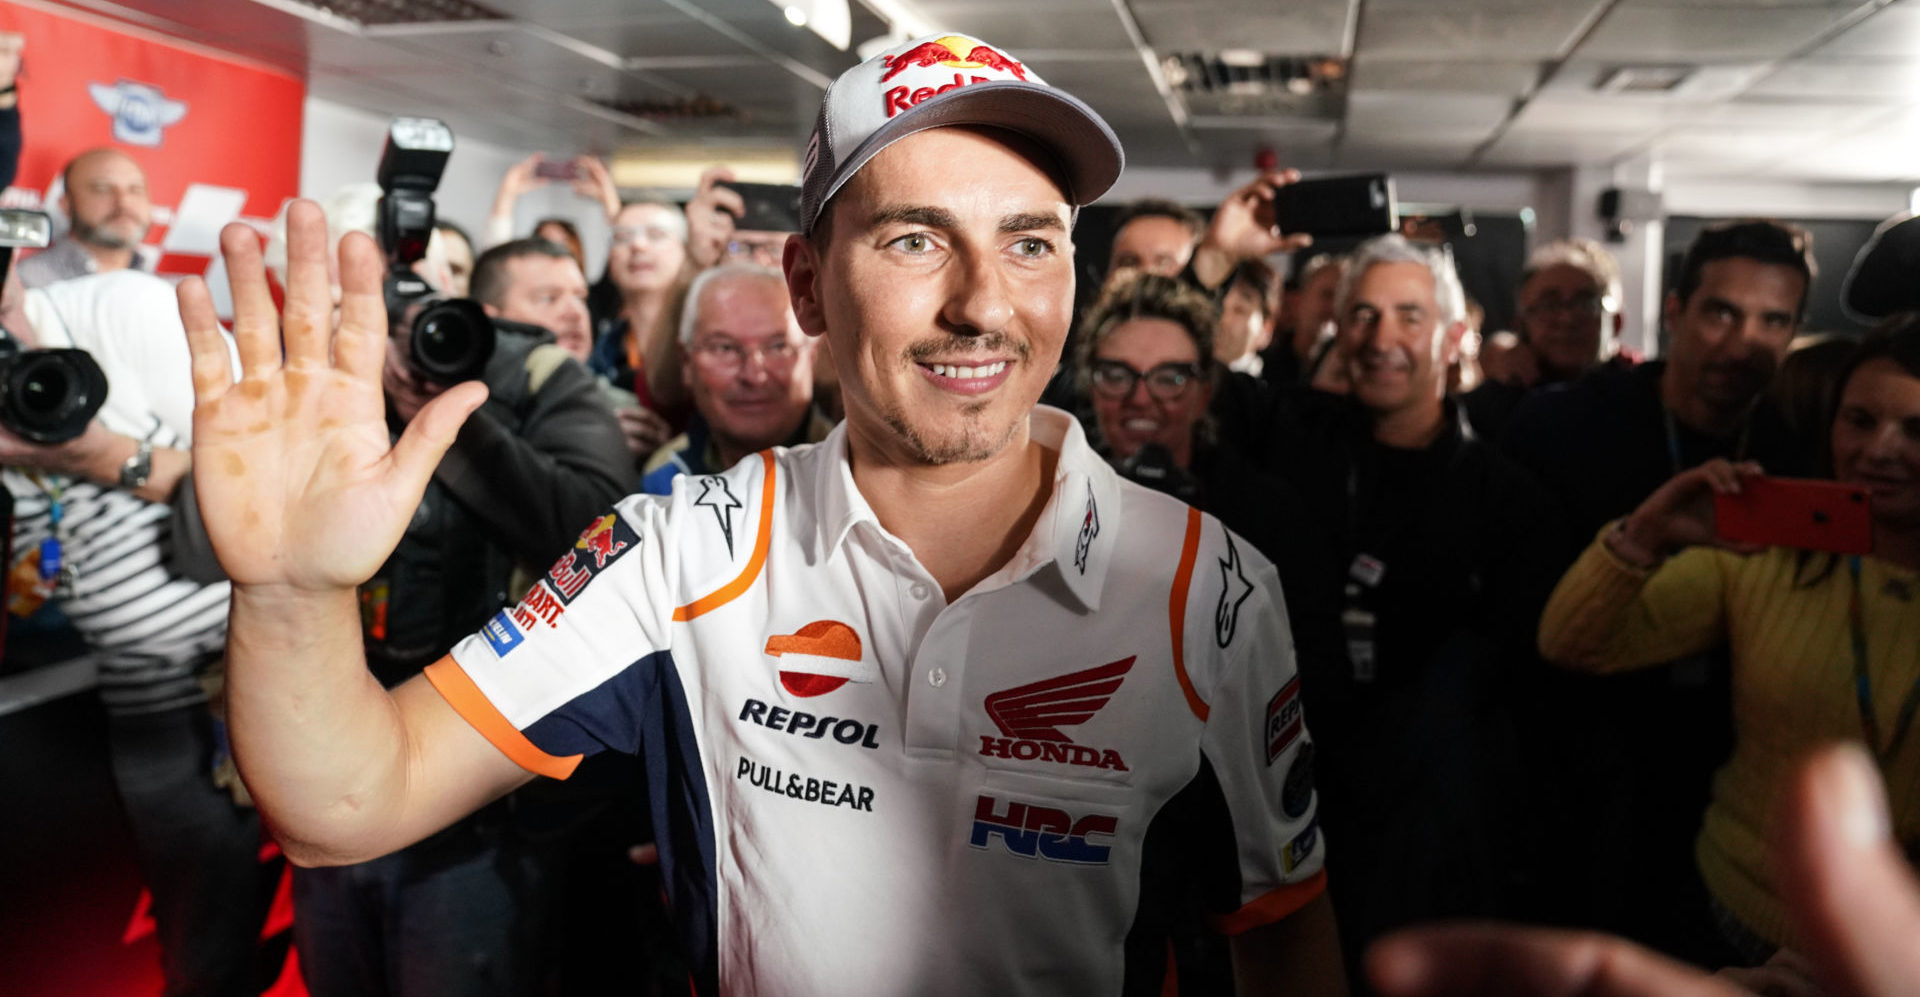 Jorge Lorenzo at the press conference in Valencia where he announced his retirement from racing. Photo courtesy of Repsol Honda.